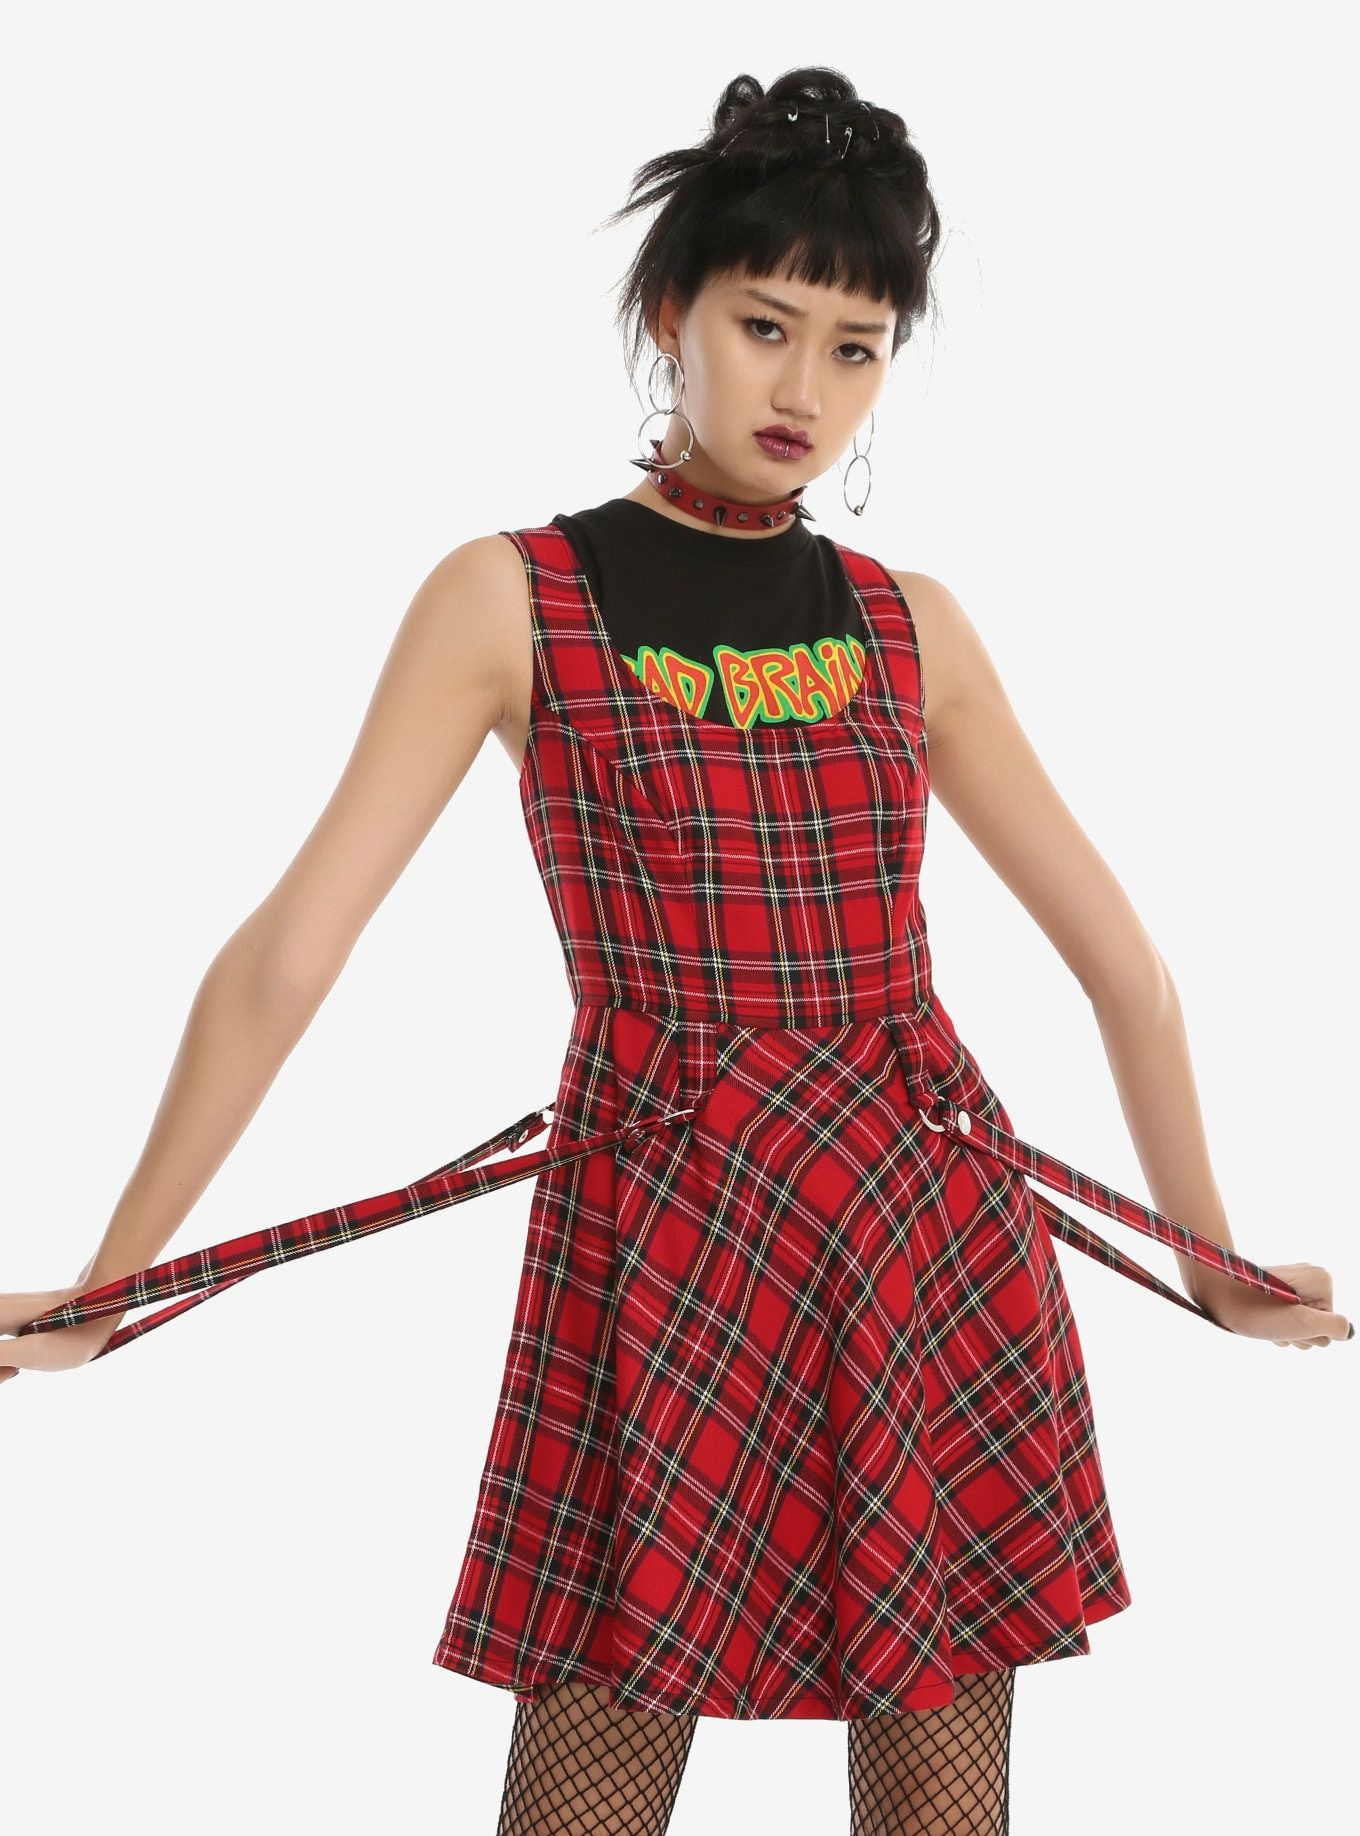 37a4d9ed73 MAD for PLAID    Tripp Red Plaid Suspender Dress Gothic Corset